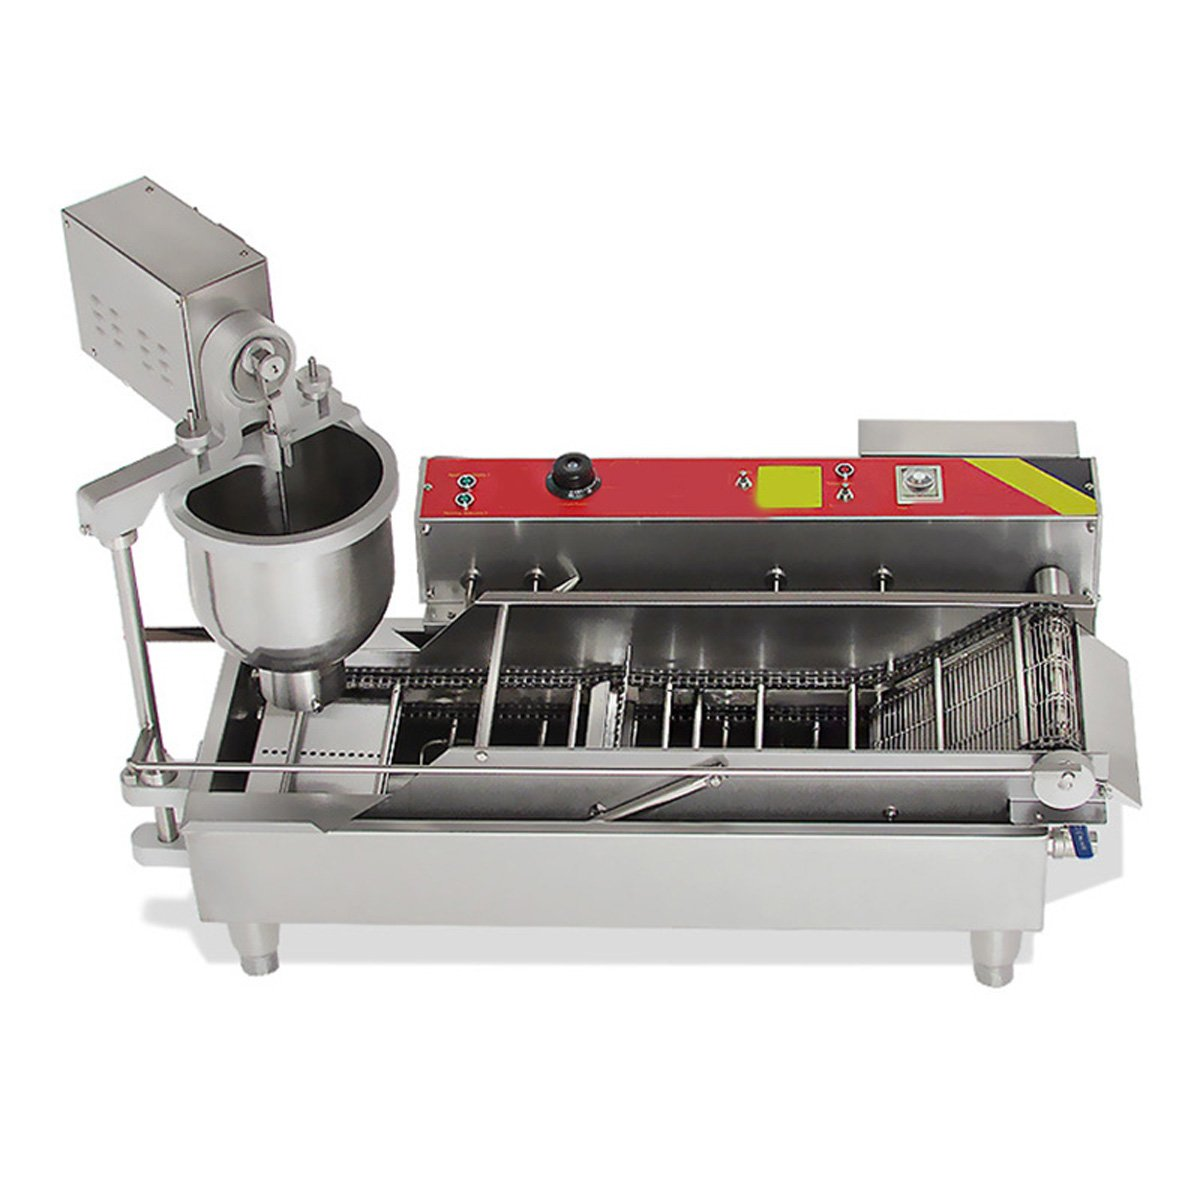 Enshey 7L Commercial Automatic Donut Machine Donut Maker Frying Machine/Auto Donuts Frying Molding Turning Collecting Donut Fryer Machine 110v 220v Electric Auto Donut Cake Producer, 3 Sizes Moulds